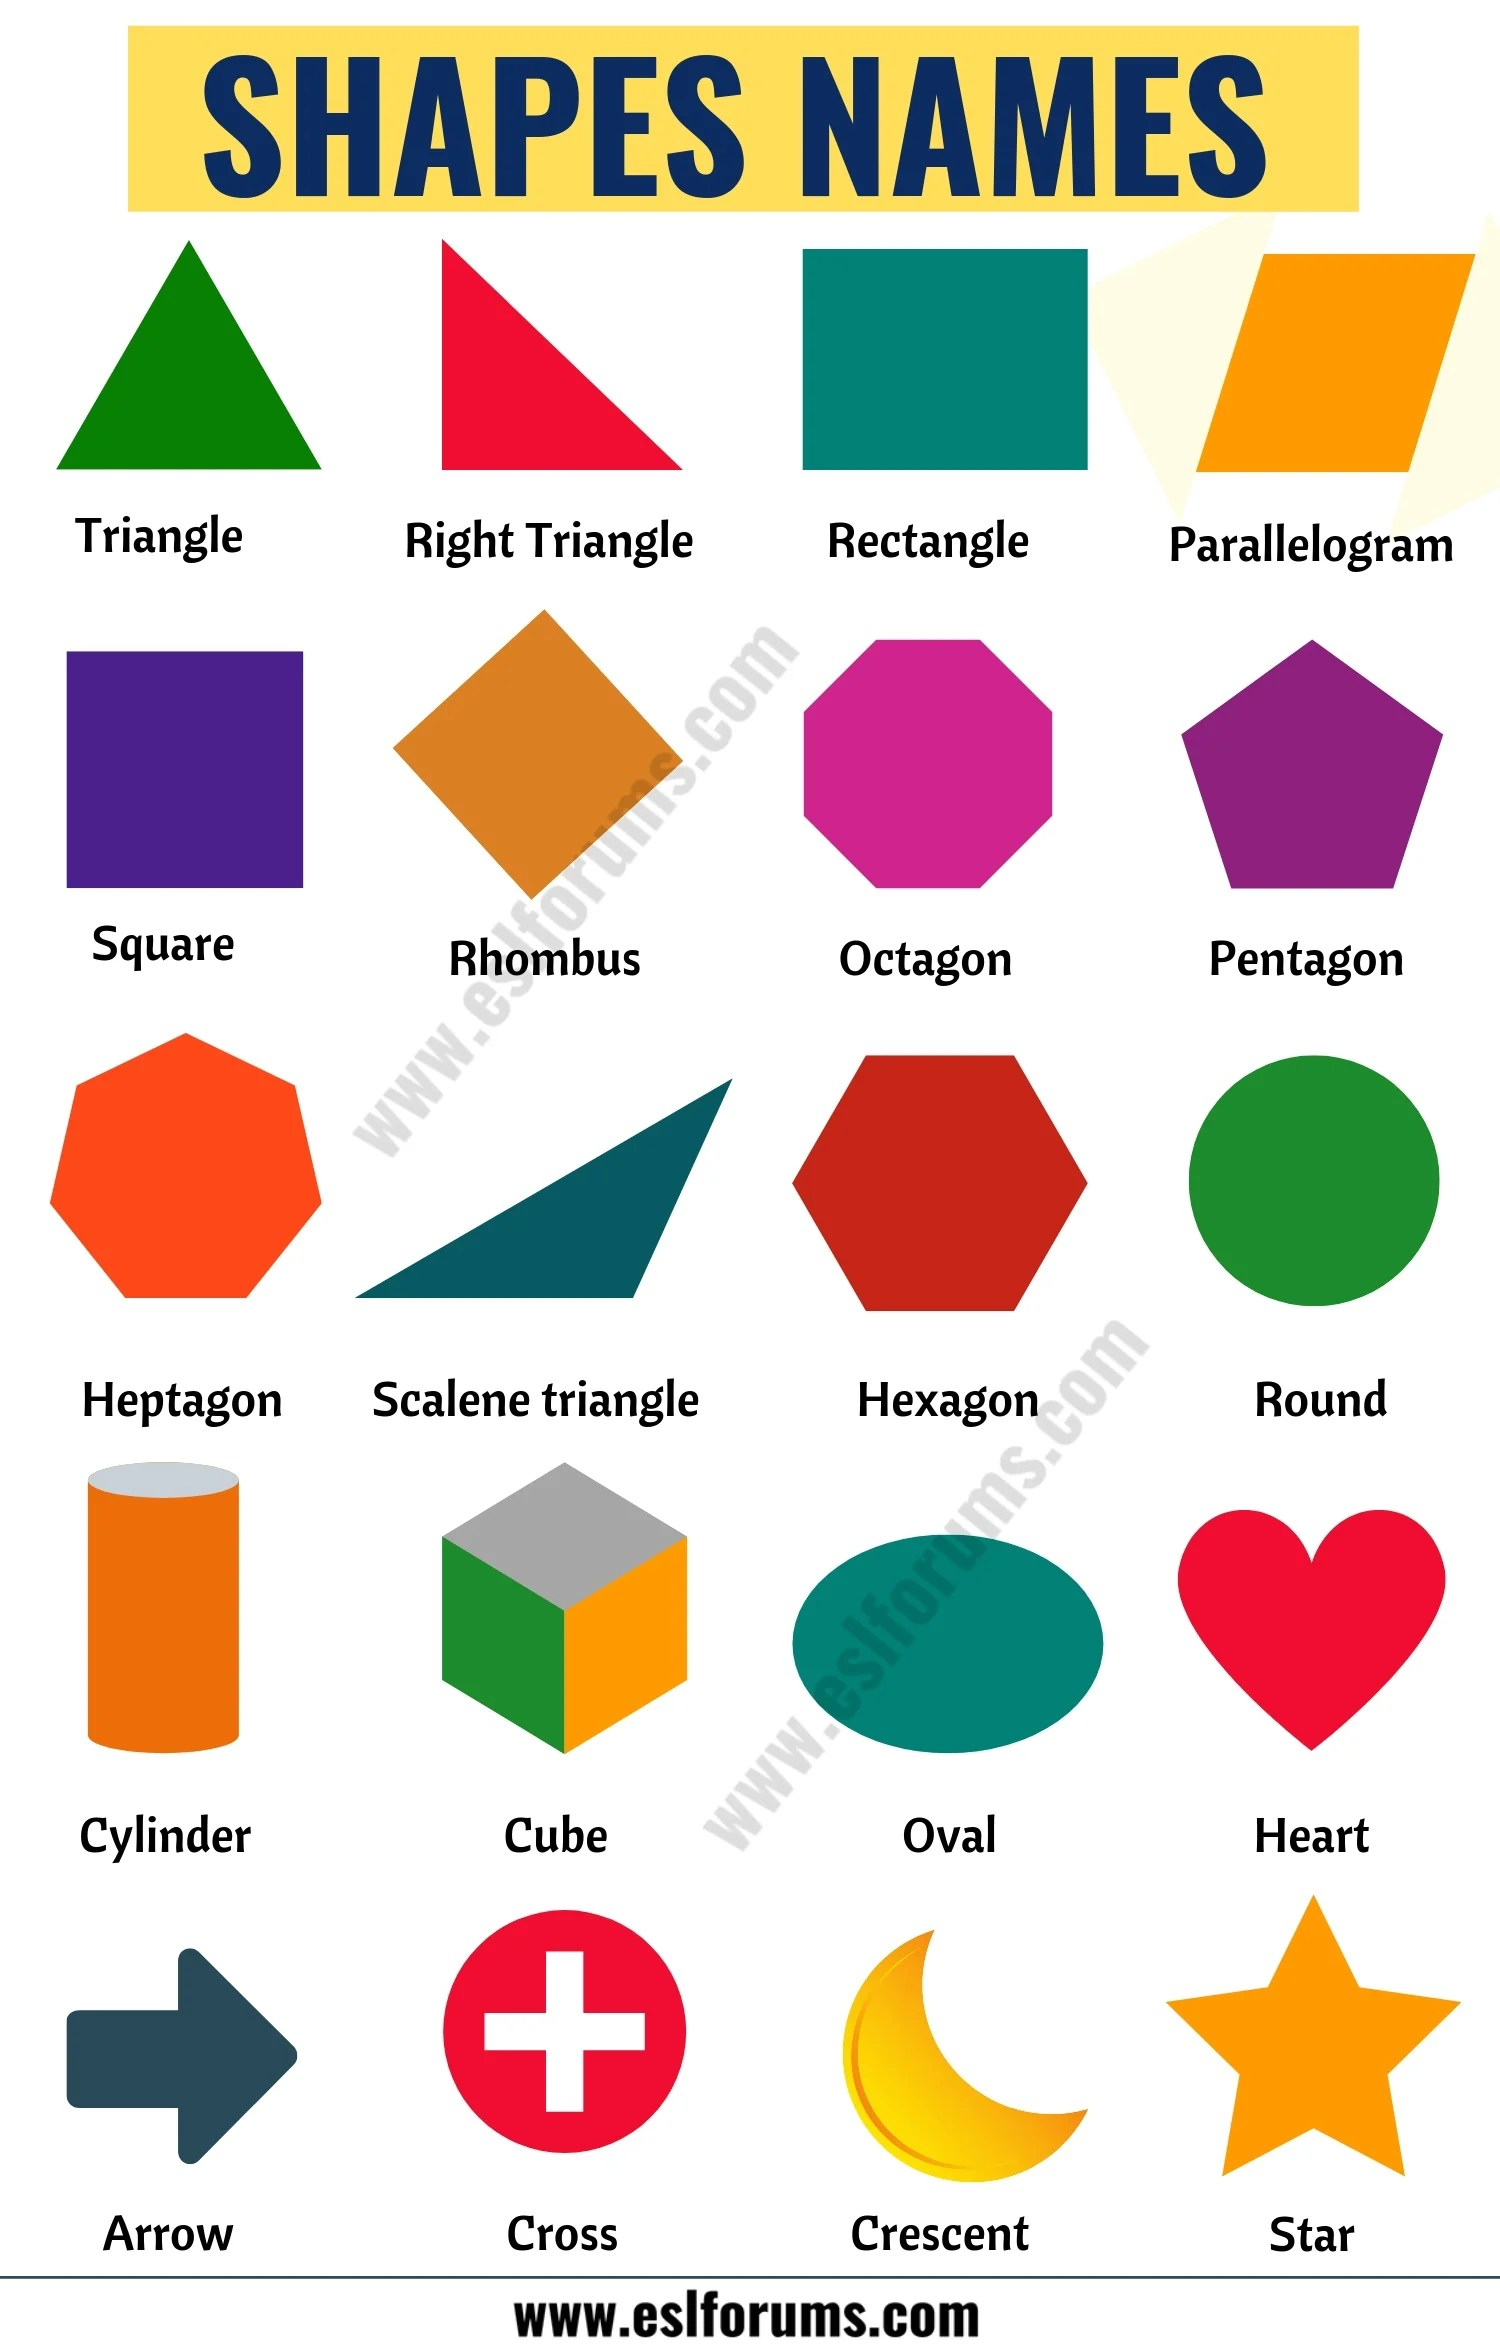 Shapes Names List Of 20 Names Of Geometric Shapes With